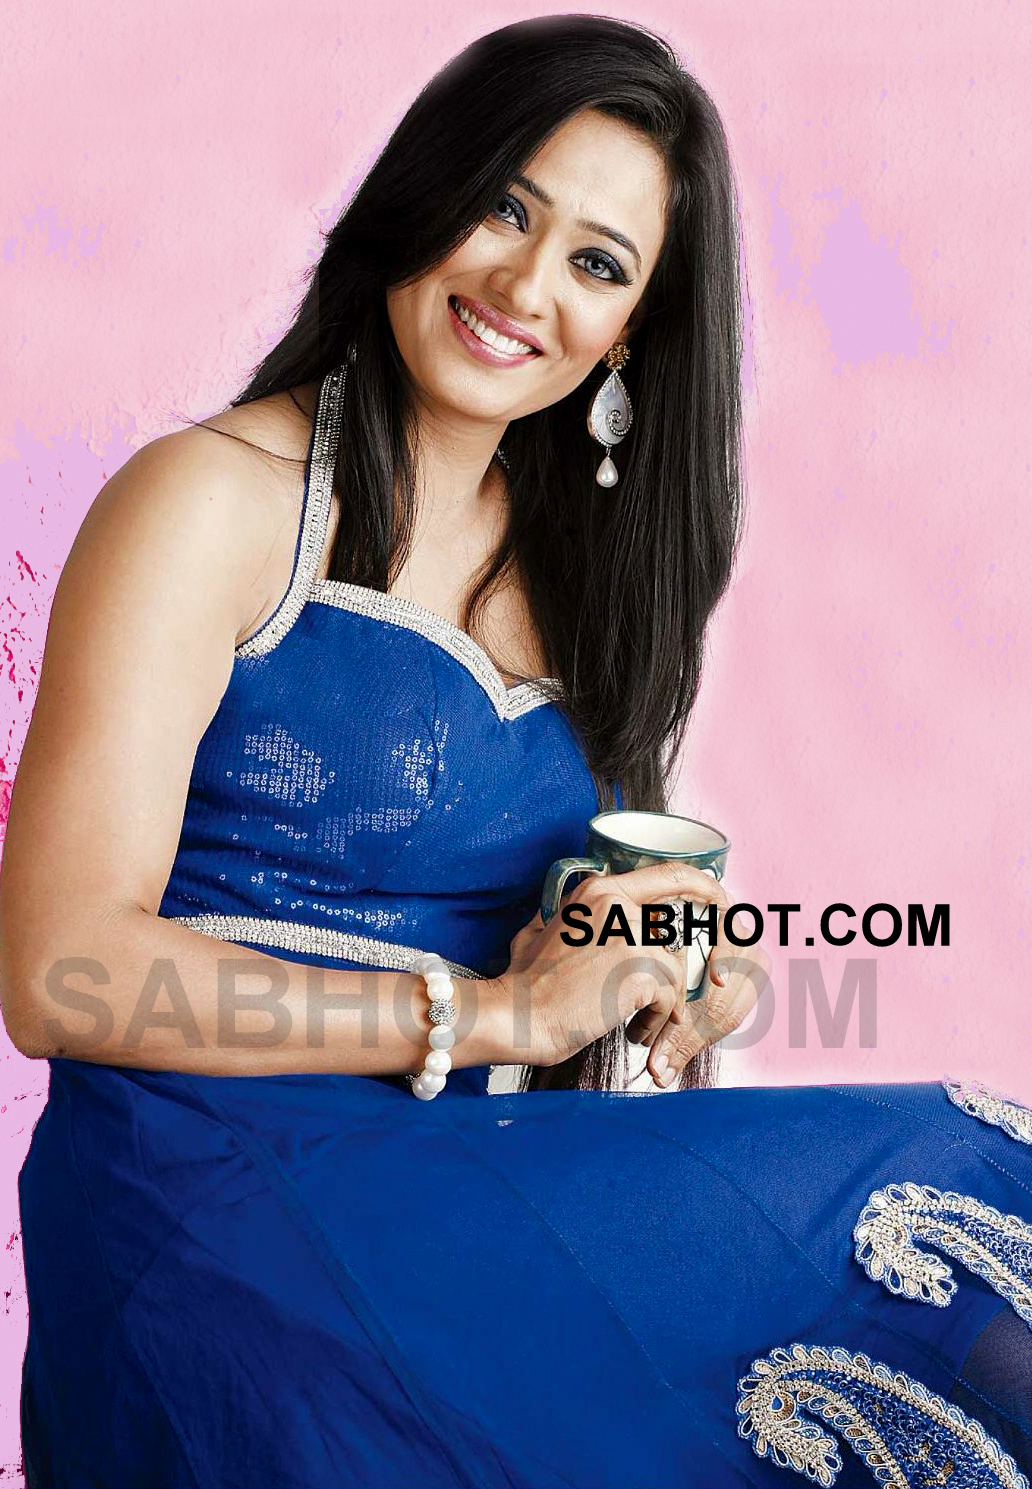 Bhojpuri Actress Shweta tiwari latest 2012 look - Shweta tiwari HQ Blue Dress Wallpaper